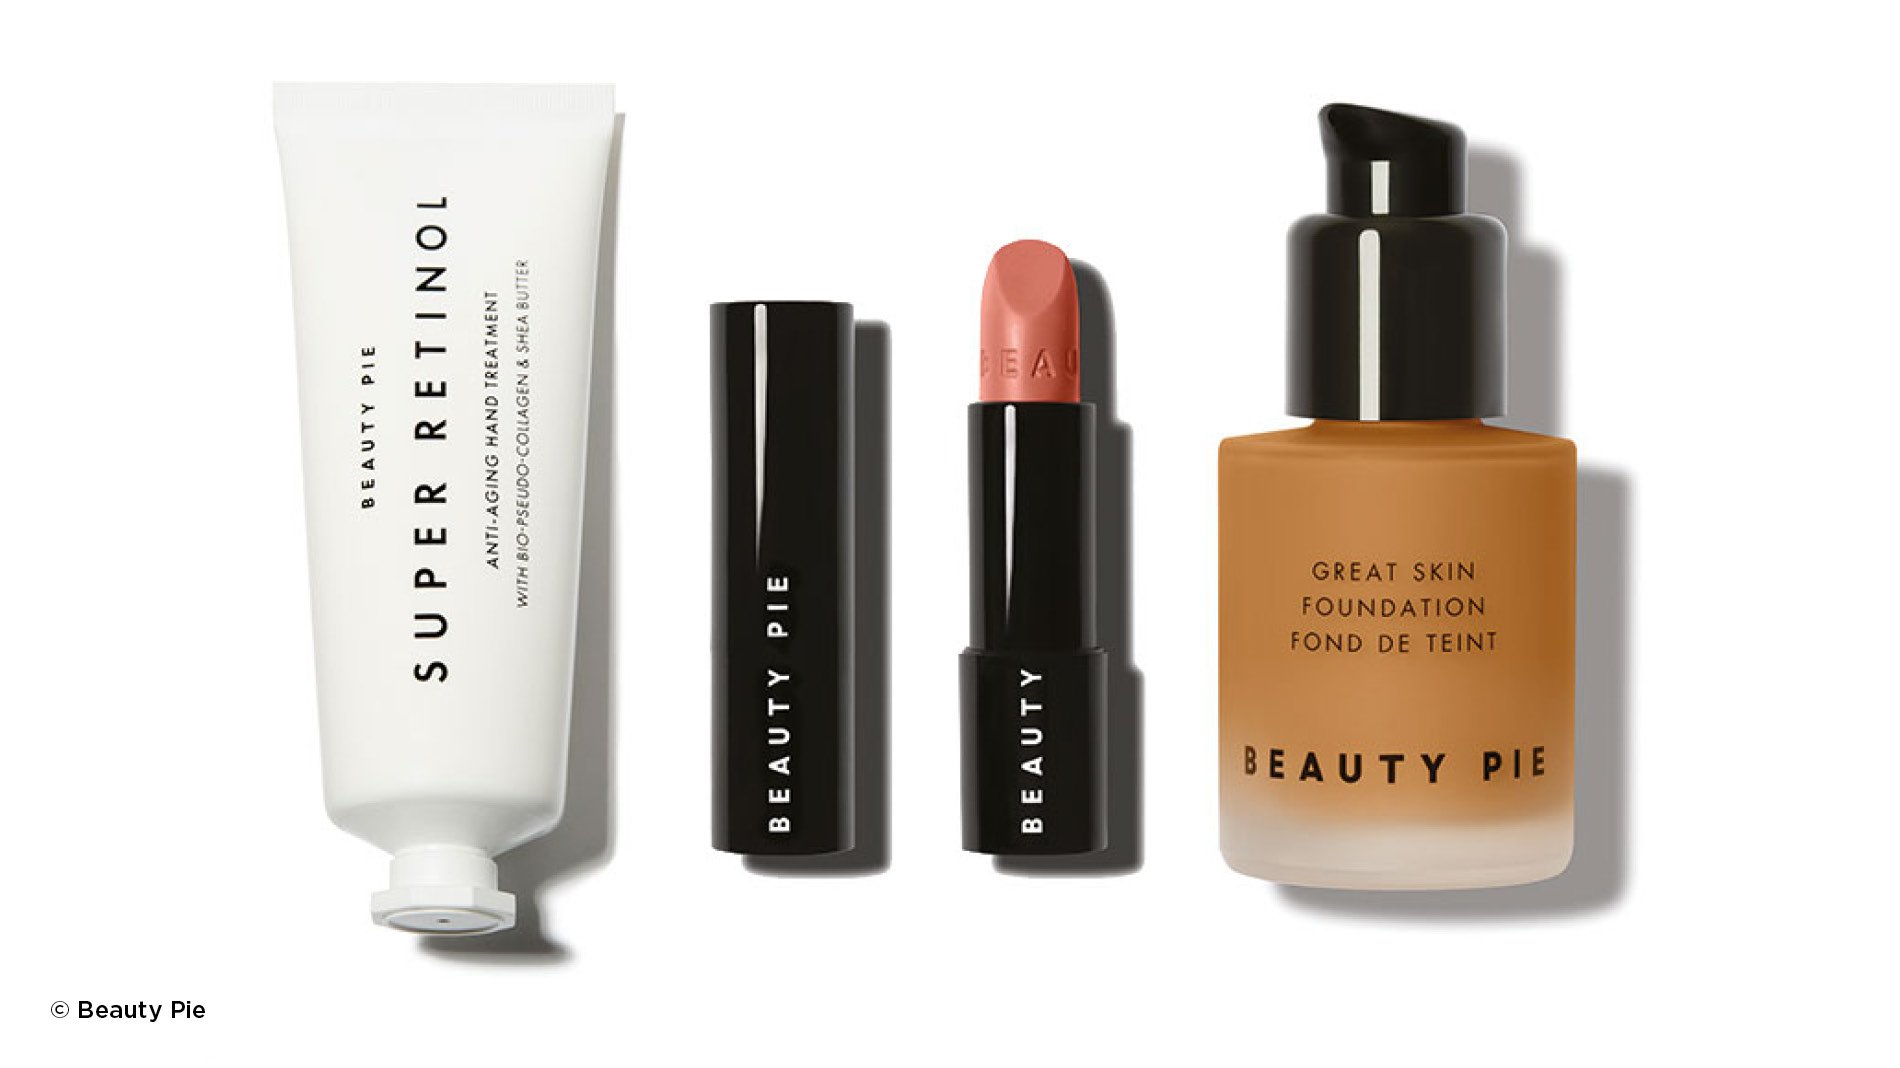 packaging by disruptive beauty brand Beauty Pie